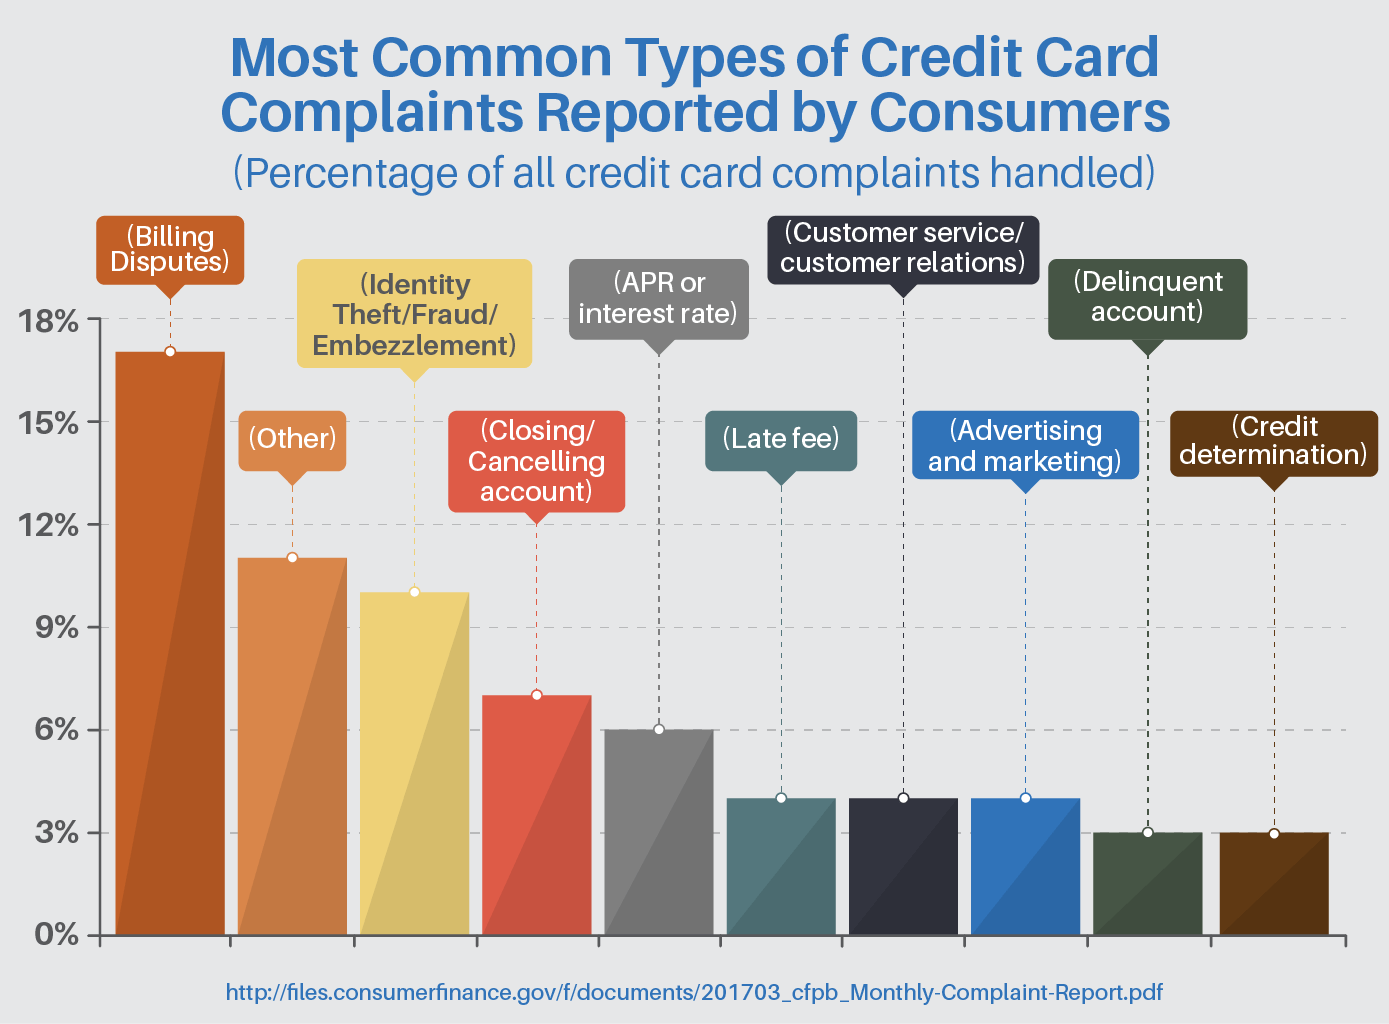 Most common types of credit card complaints reported by consumers